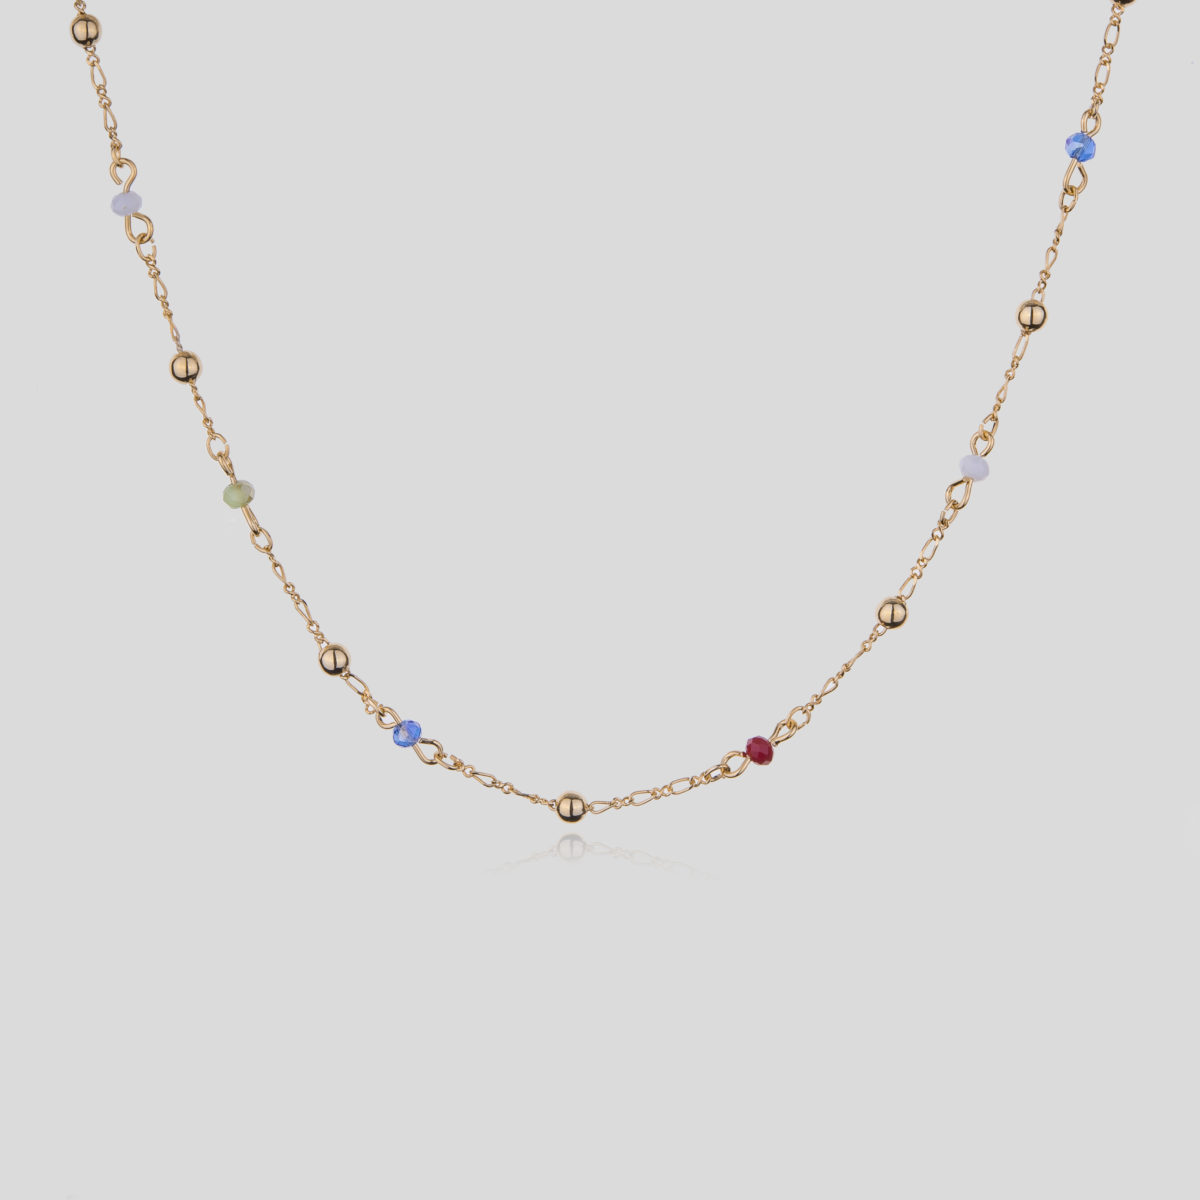 Formentera. 8 Karat gold-plated thin metal choker with golden balls and colored crystals interspersed